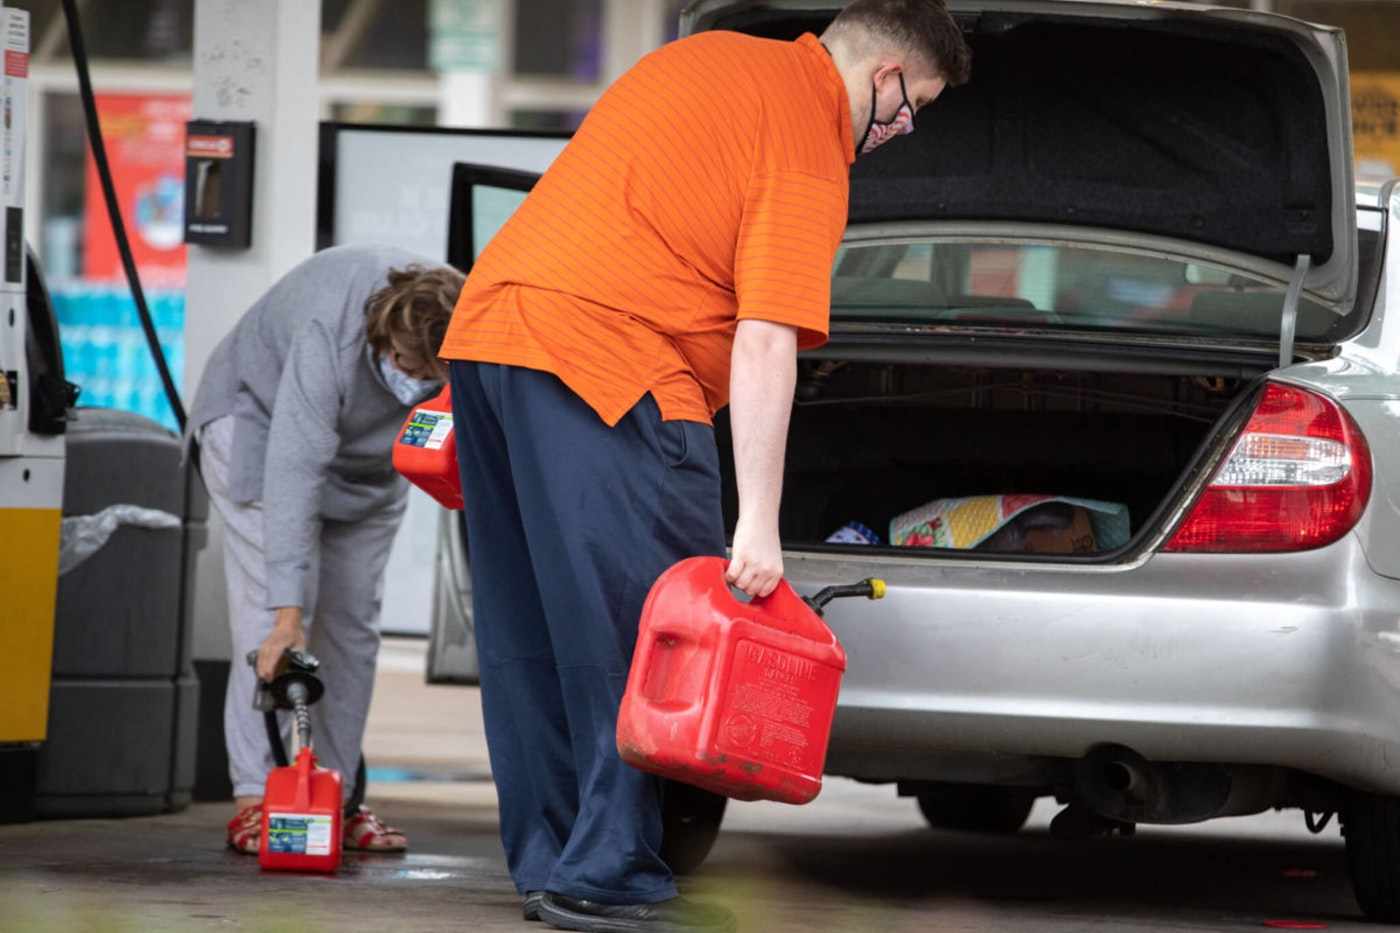 A person in an orange shirt accompanied by another in gray load numerous gas containers into a sedan at a Charlotte, NC gas station.